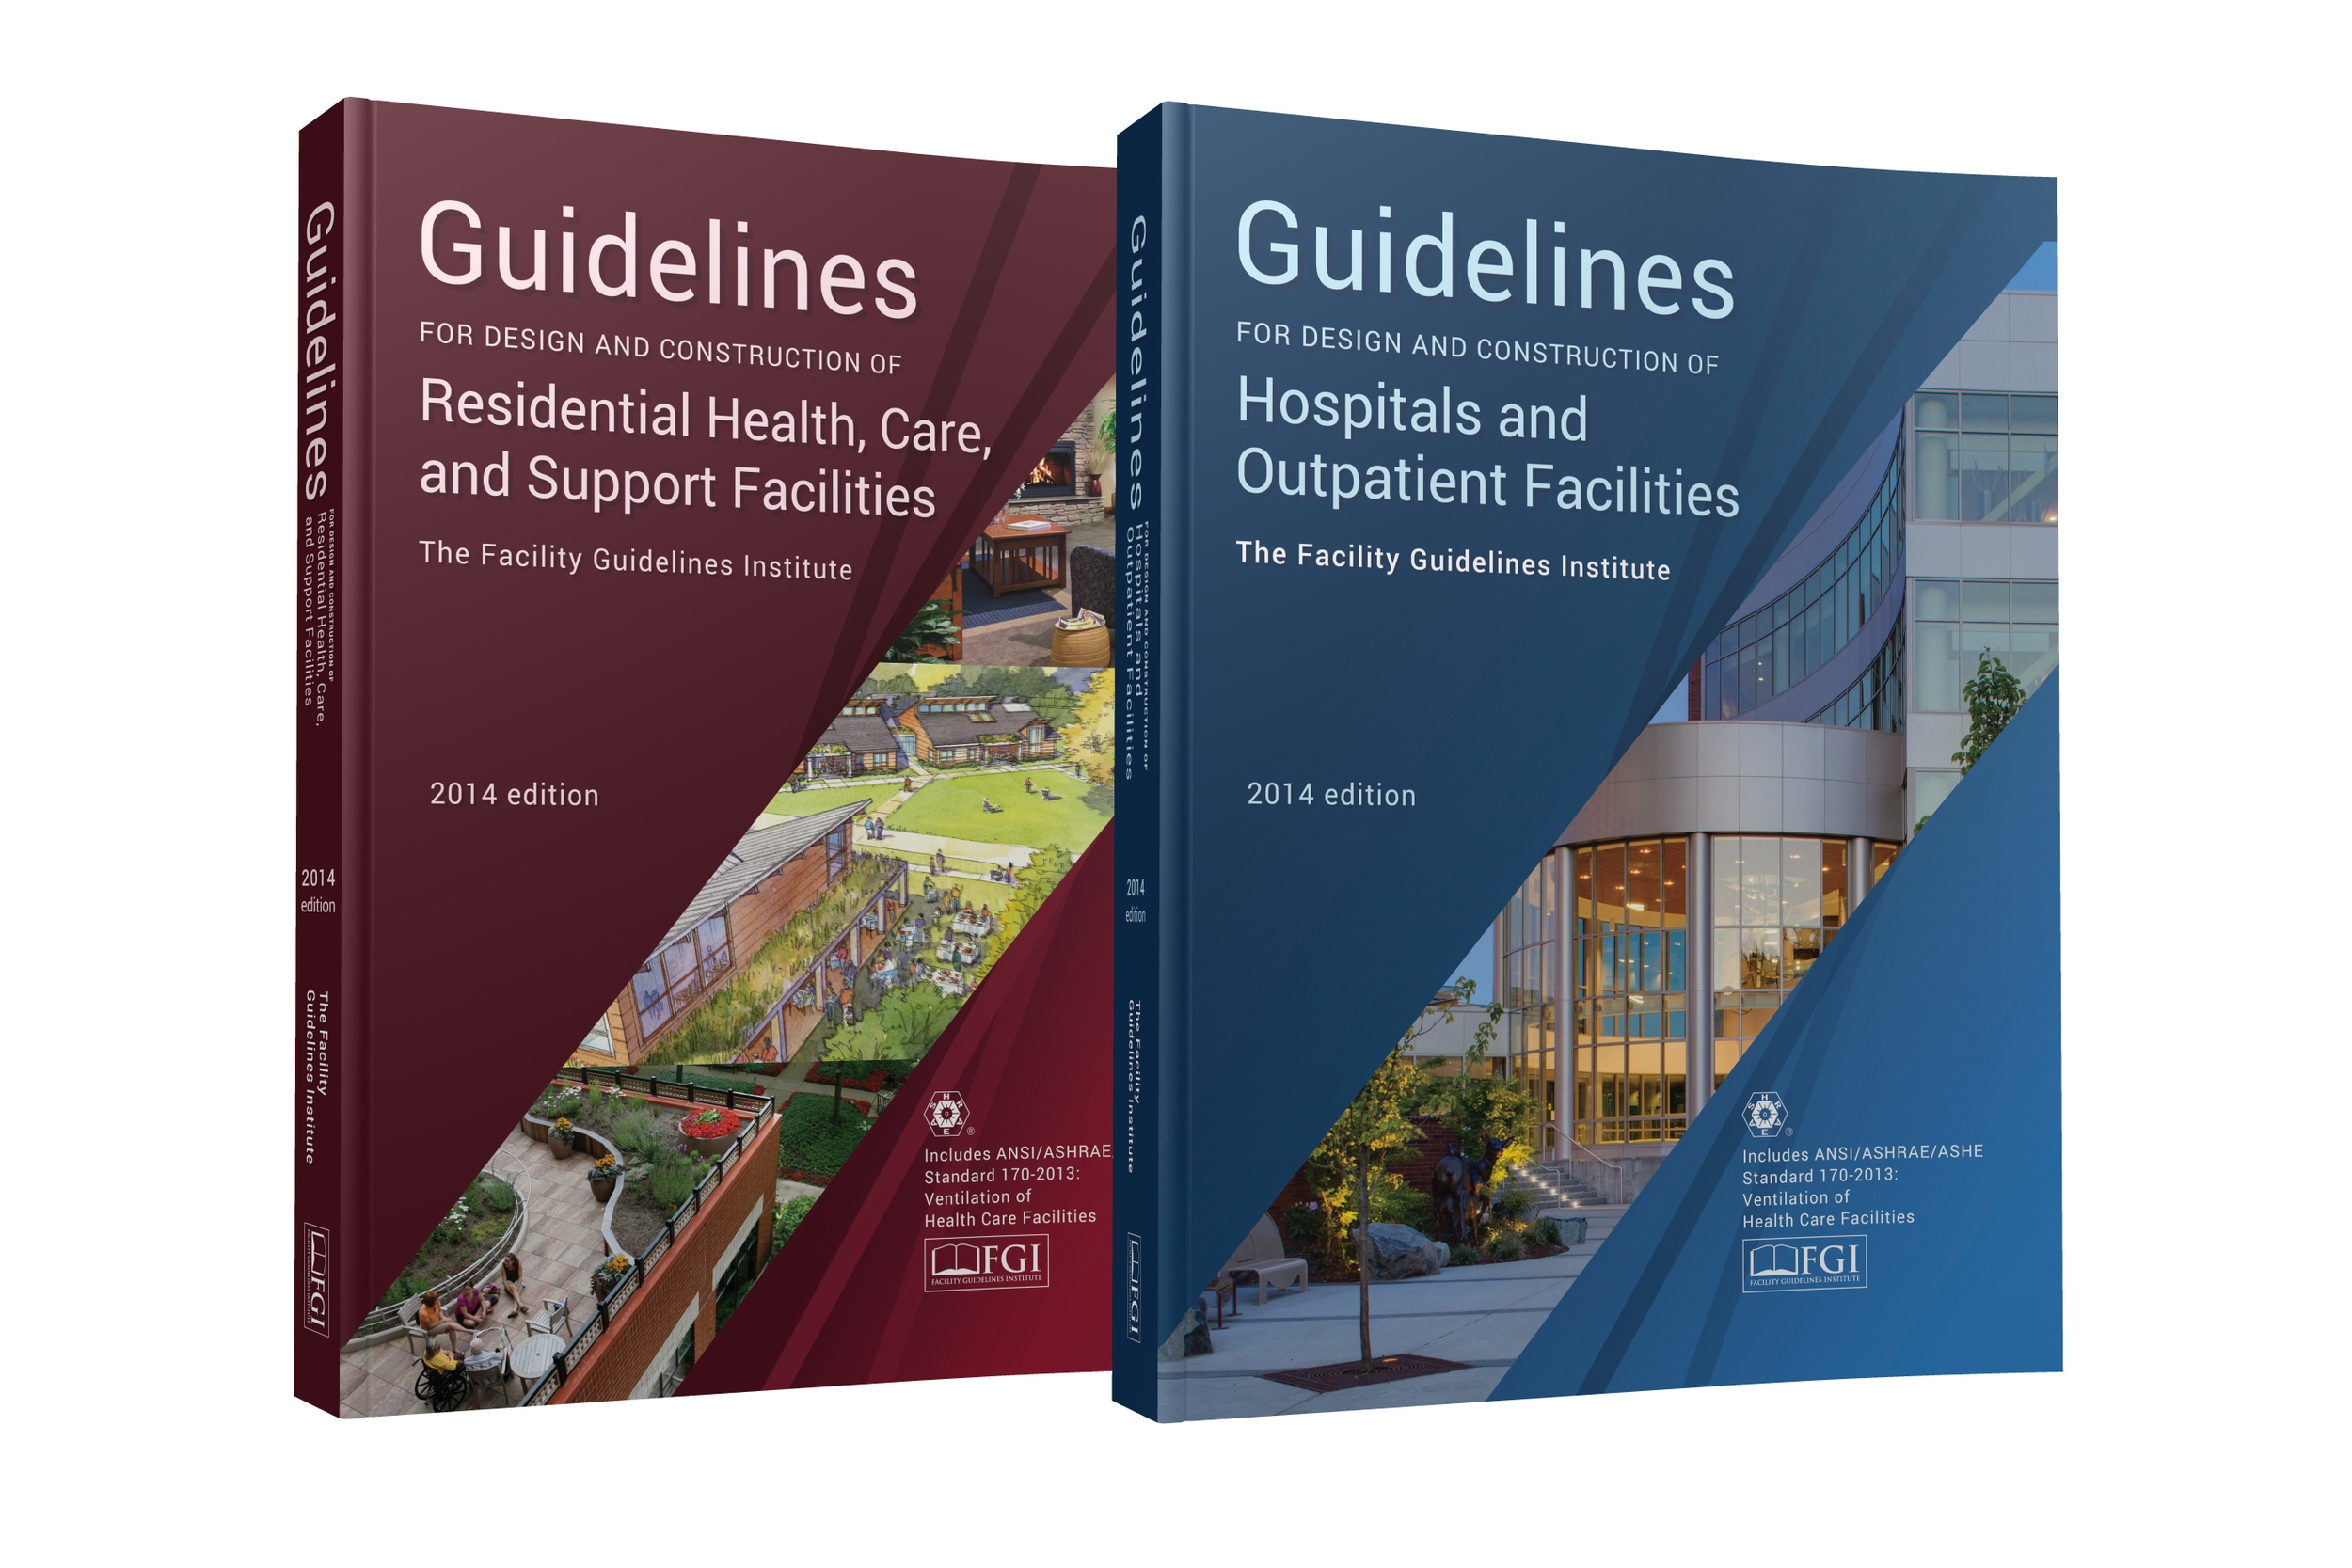 Review of the Guidelines for Design and Construction of Healthcare Facilities, 2010 Edition    Funds:  Facility Guidelines Institute and HKS Inc.   Collaborators:  Not Applicable   Location:   Not Applicable